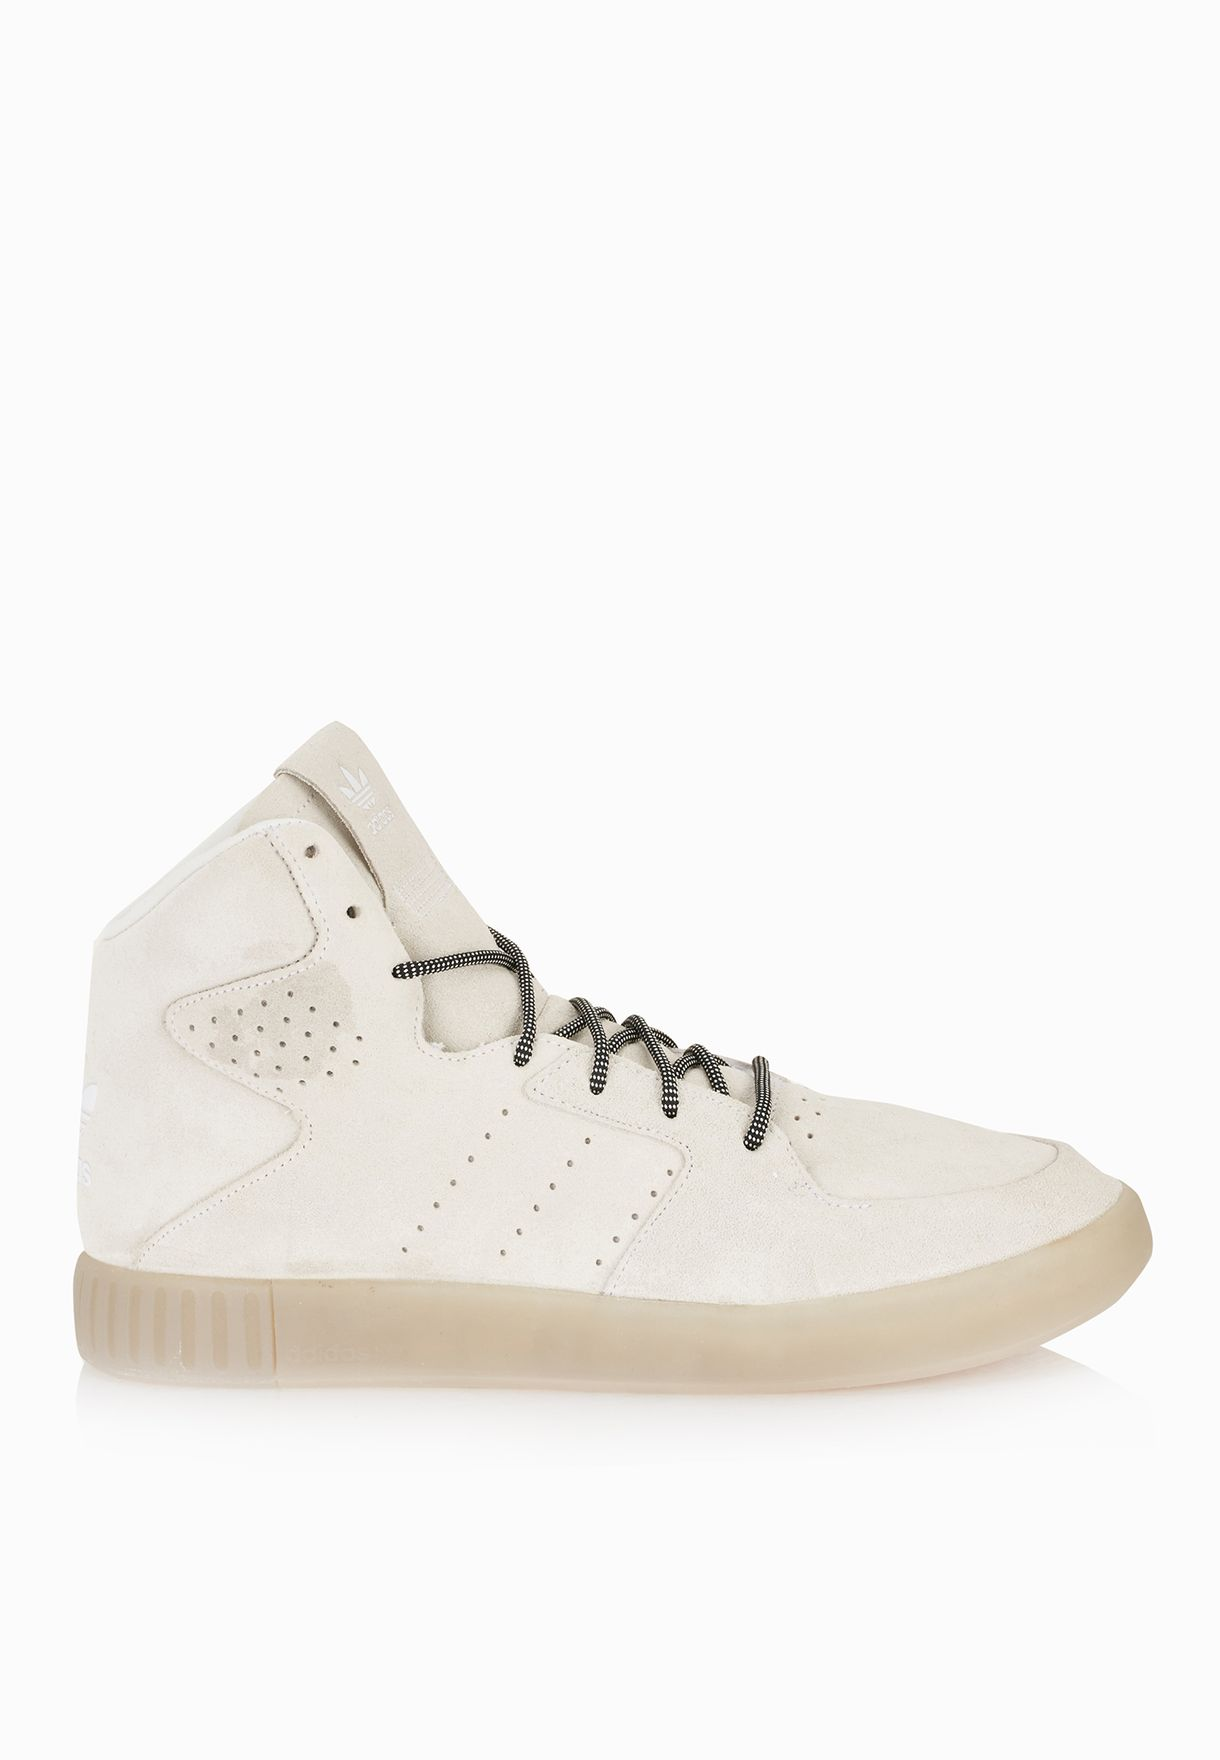 874b2fbfc54 Shop adidas Originals grey Tubular Invader 2.0 S80399 for Men in ...